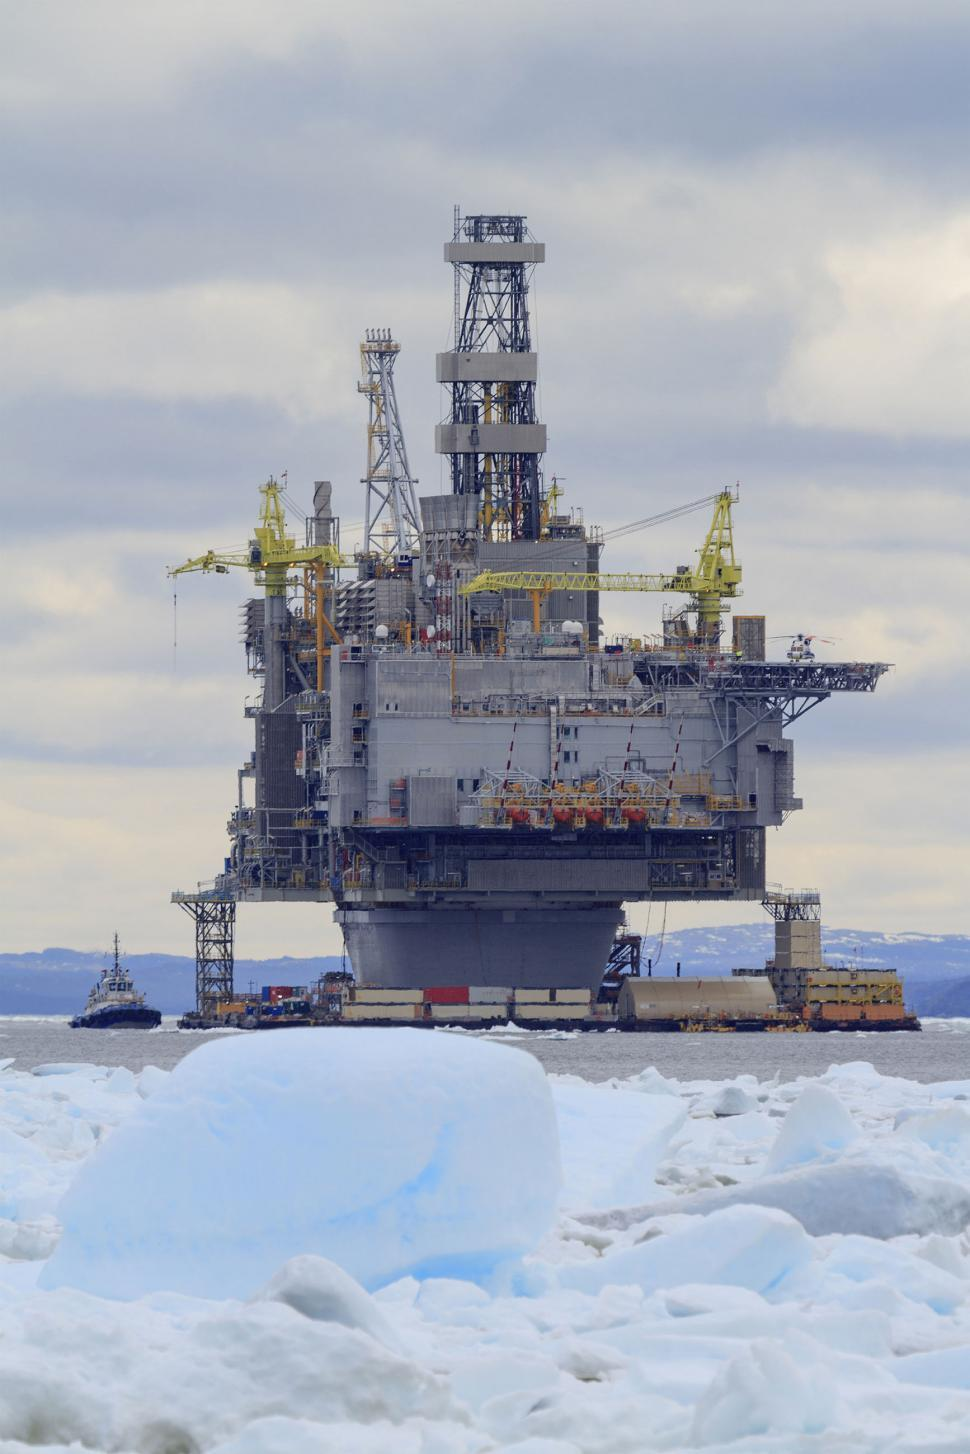 Download Free Stock HD Photo of Oil platform with ice Online